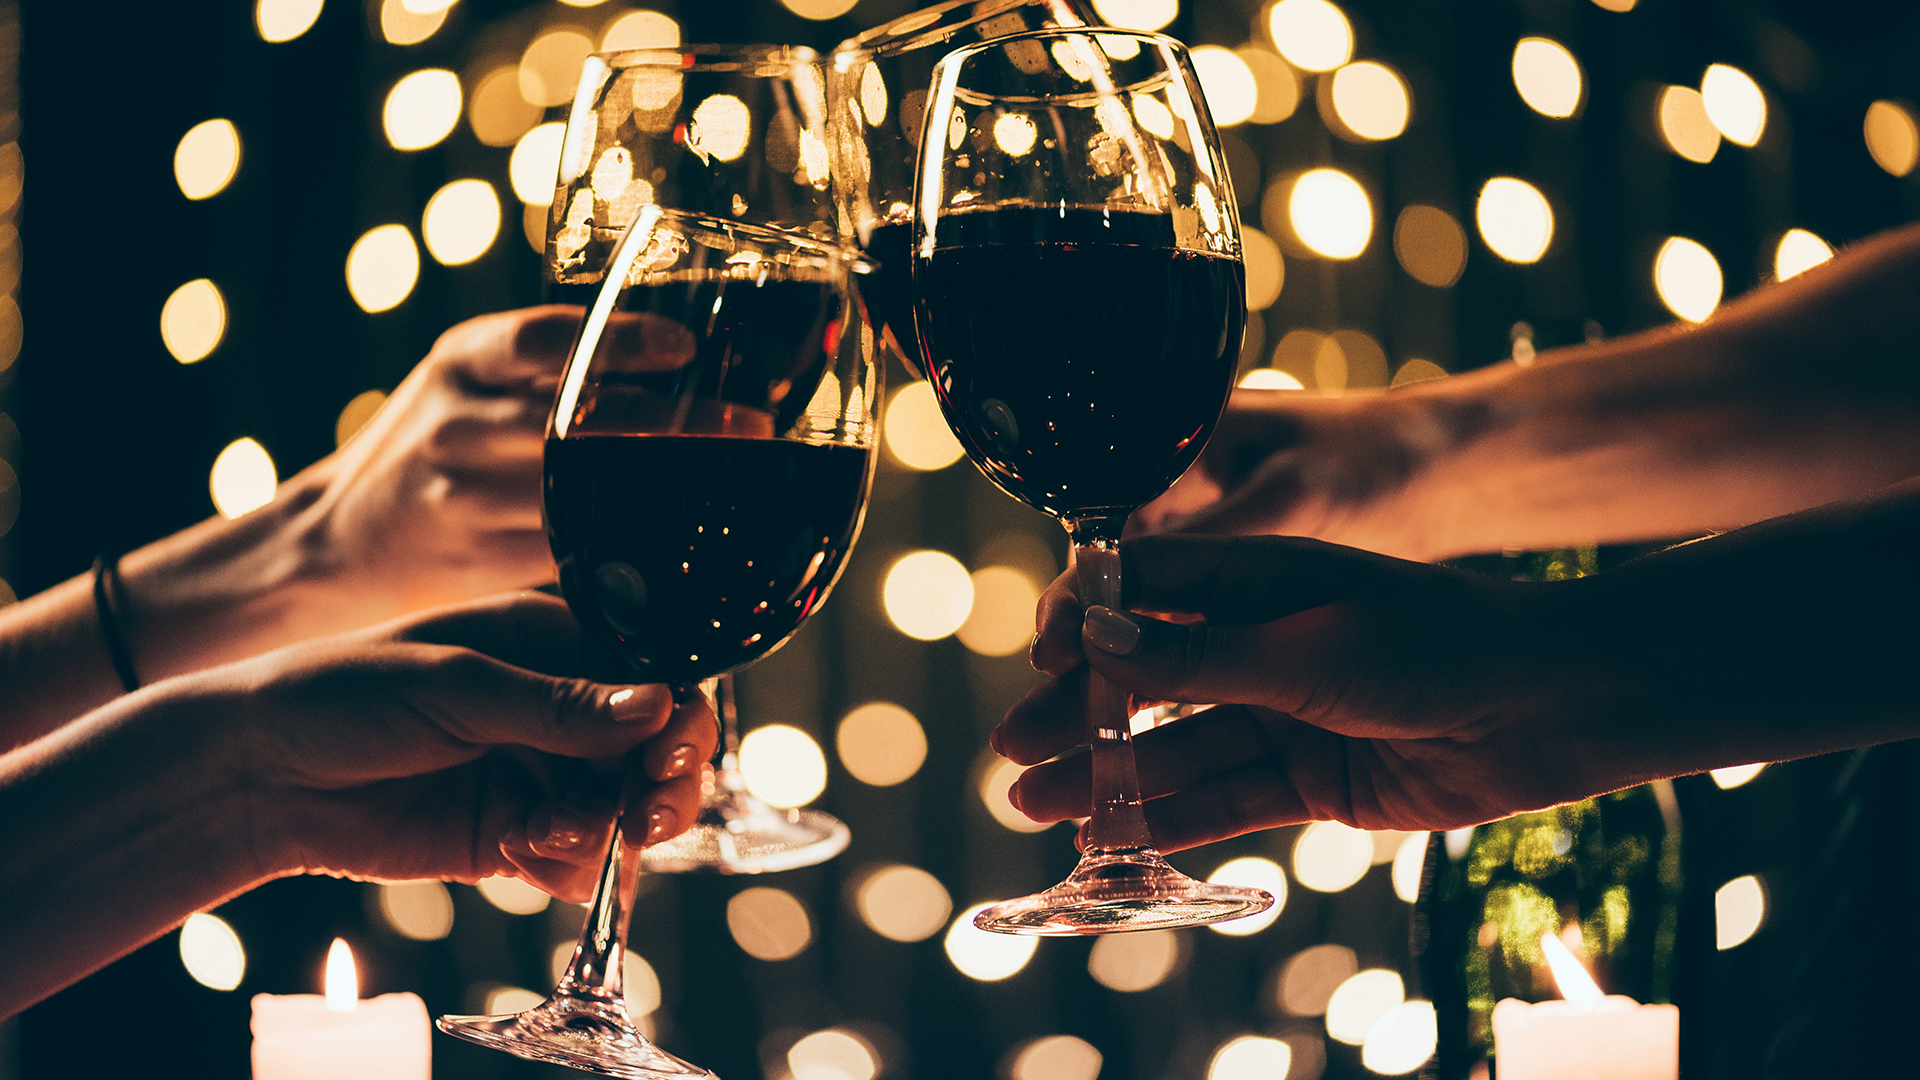 Four hands toasting with glasses of red wine with string lights in the background.